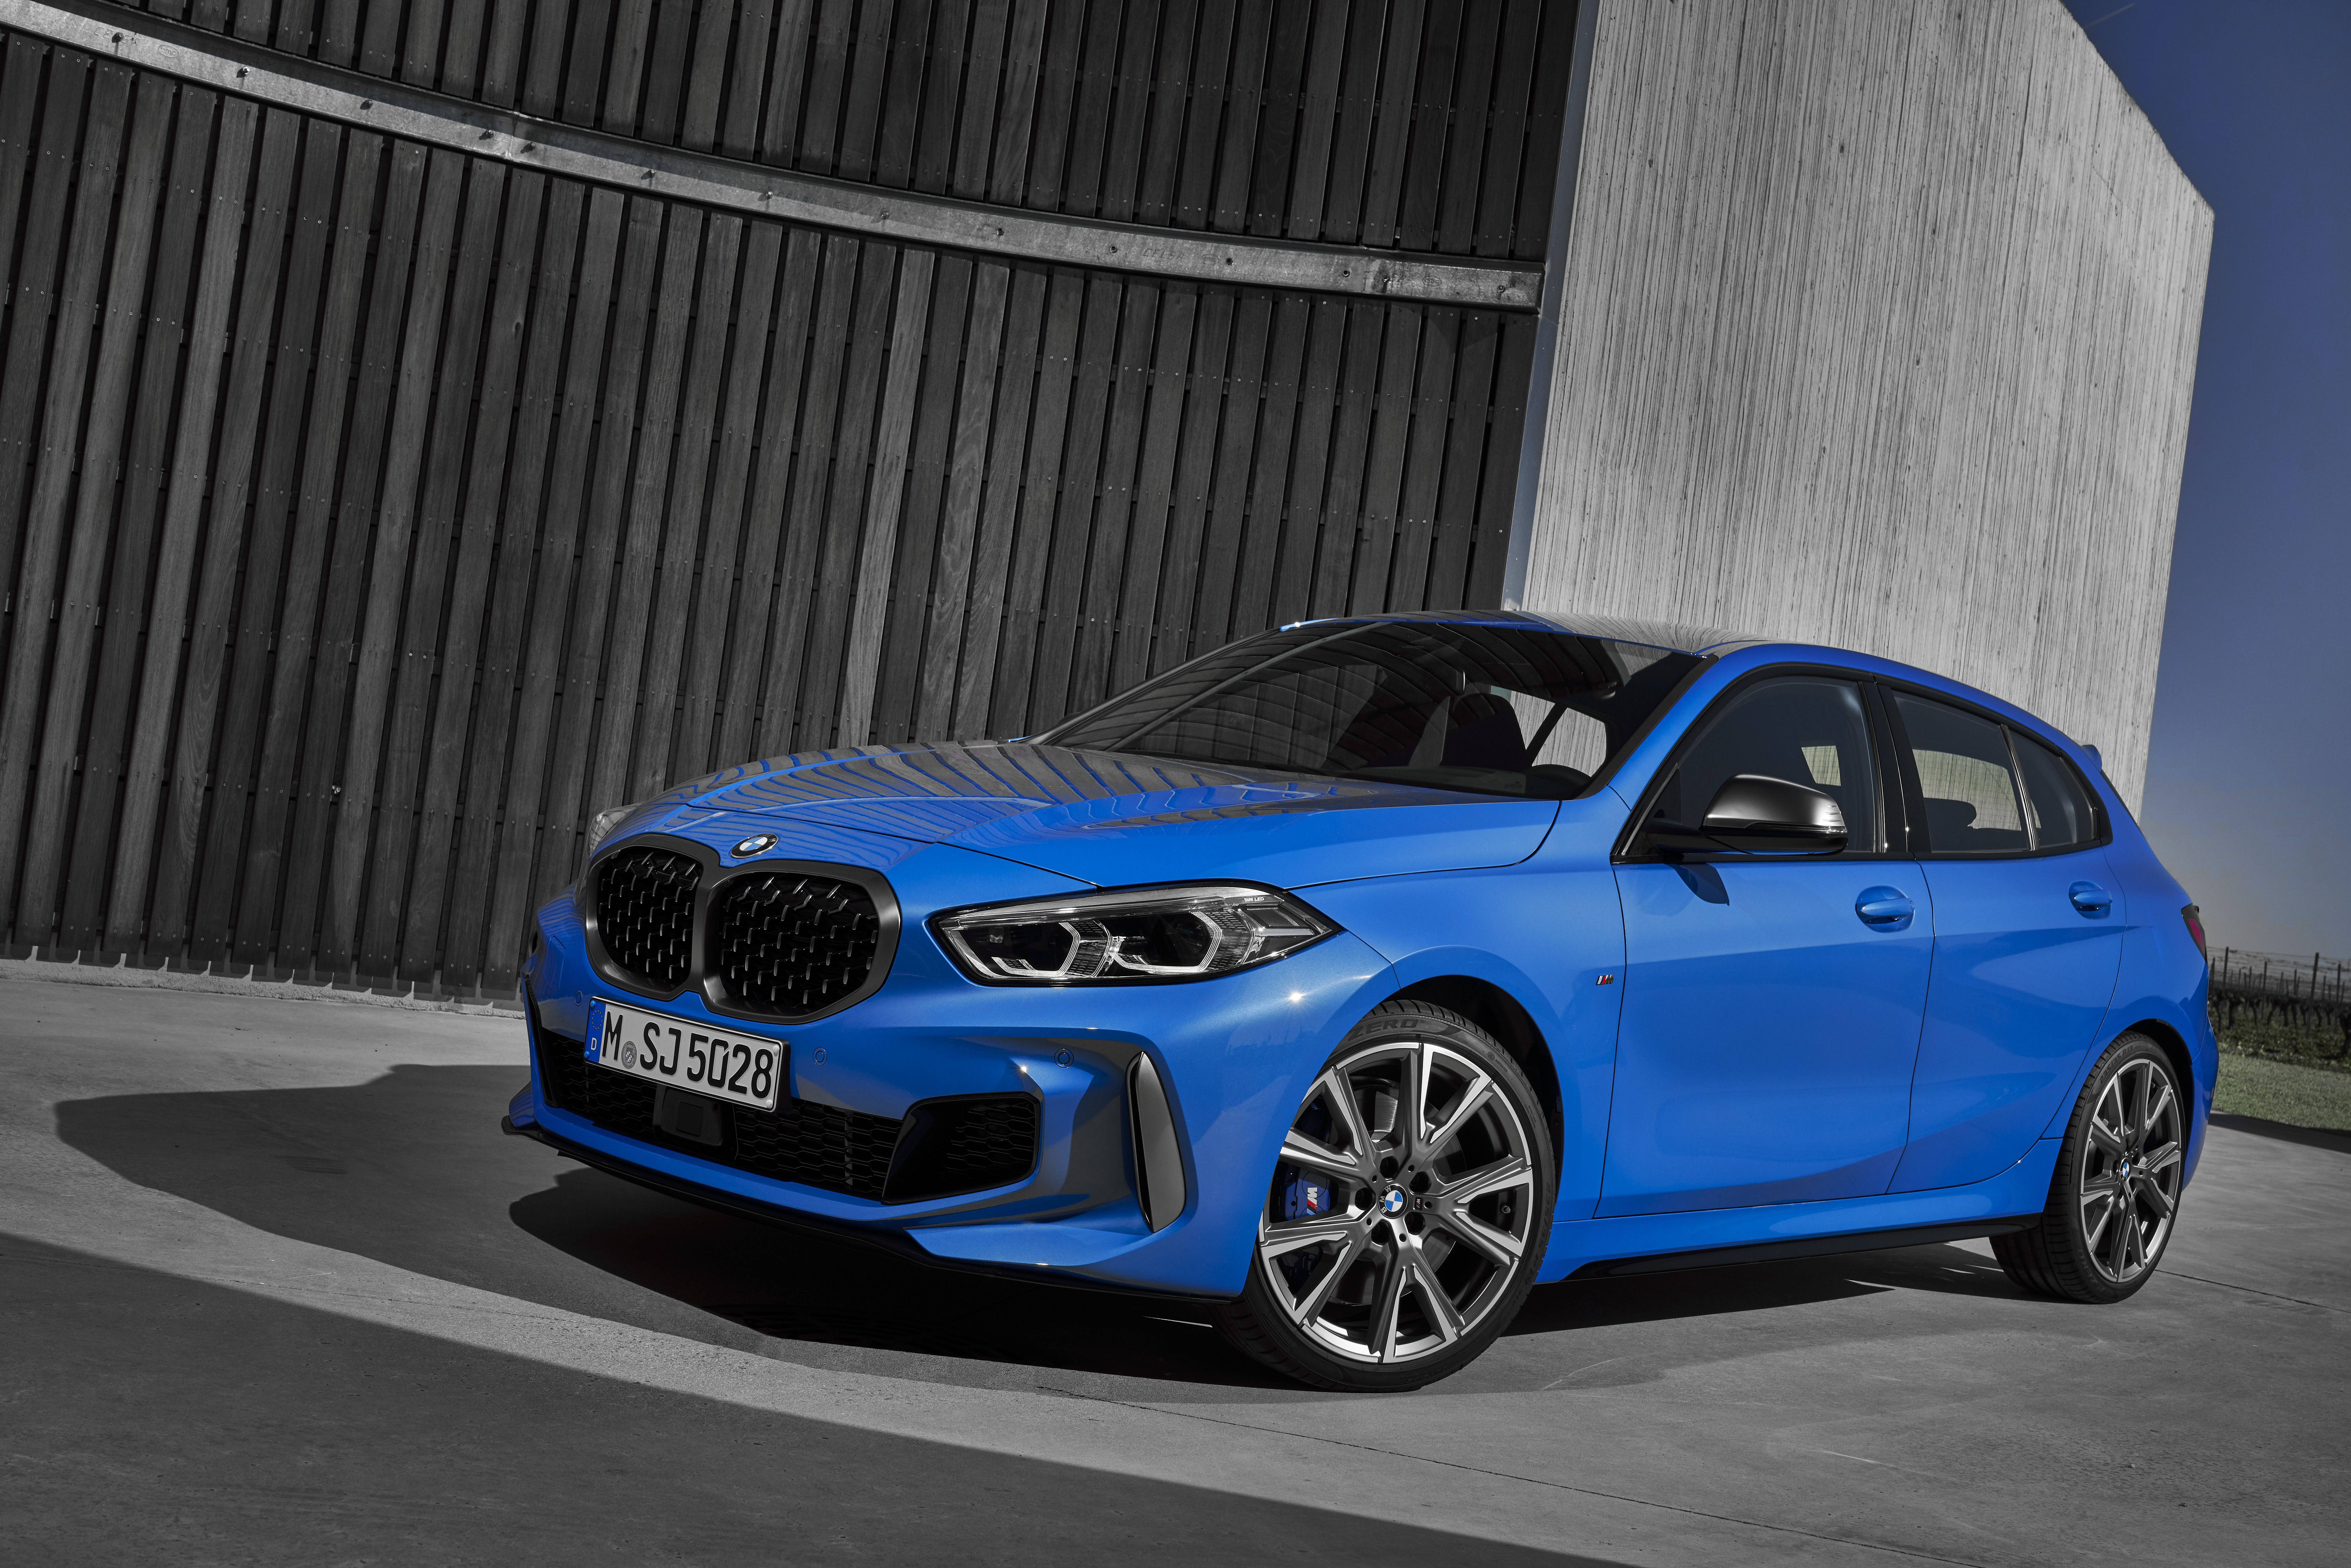 2020 Bmw 1 Series F40 Quirks And Facts Bmw Bmw 1 Series New Bmw